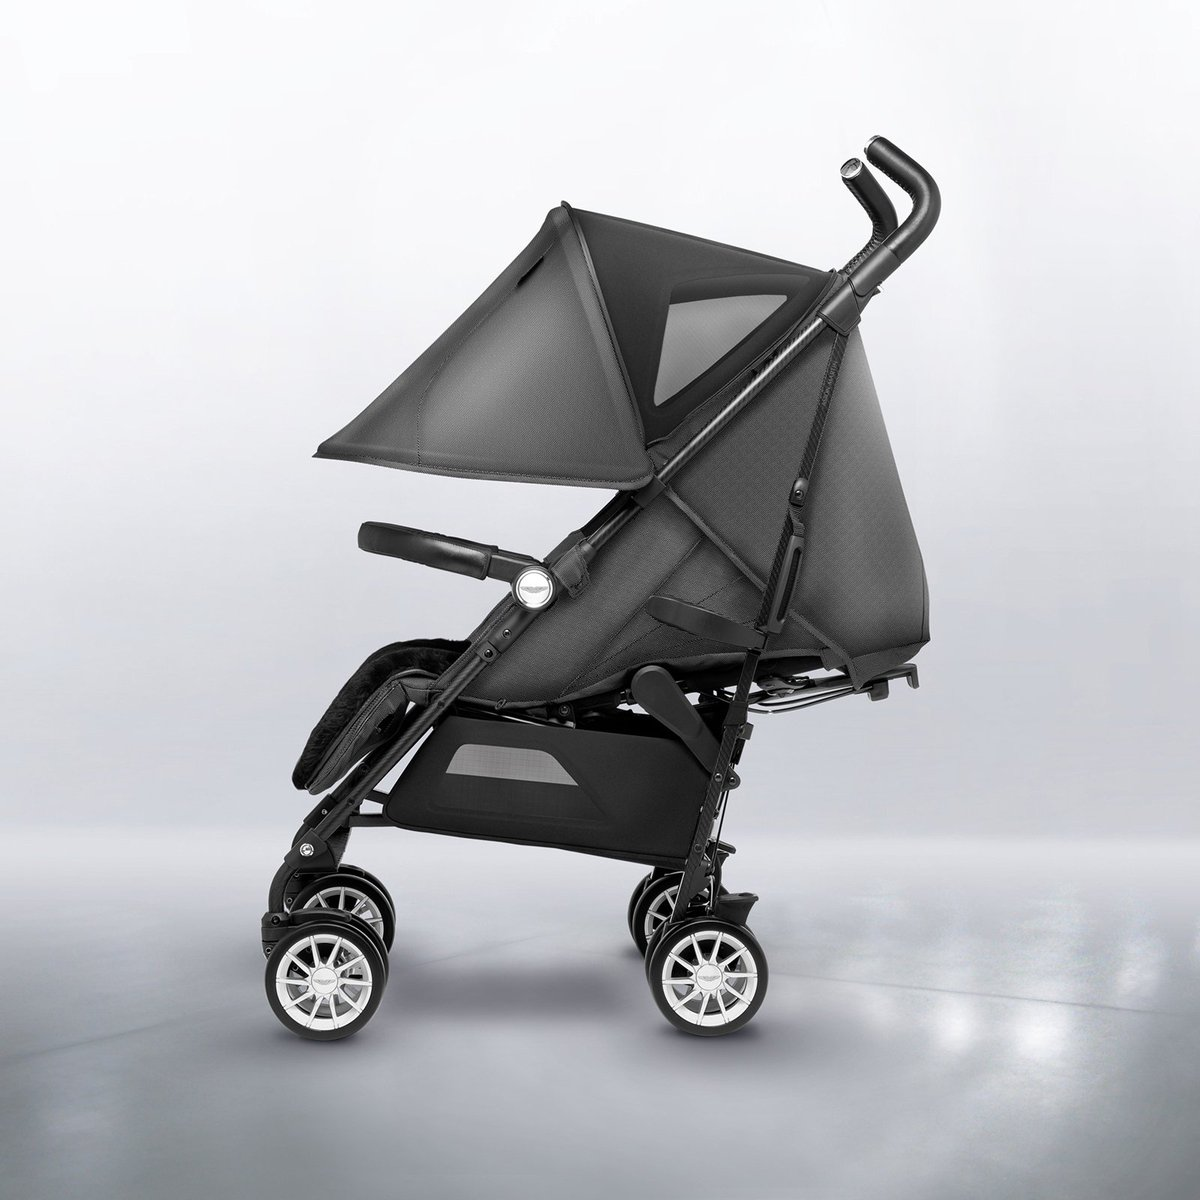 Silver Cross En Twitter Dream Pushchair Alert Have You Discovered The Reflex Aston Martin Part Of Our Exclusive Collaboration With The Iconic Car Brand It Offers The Ultimate In Stroller Luxury Silvercross